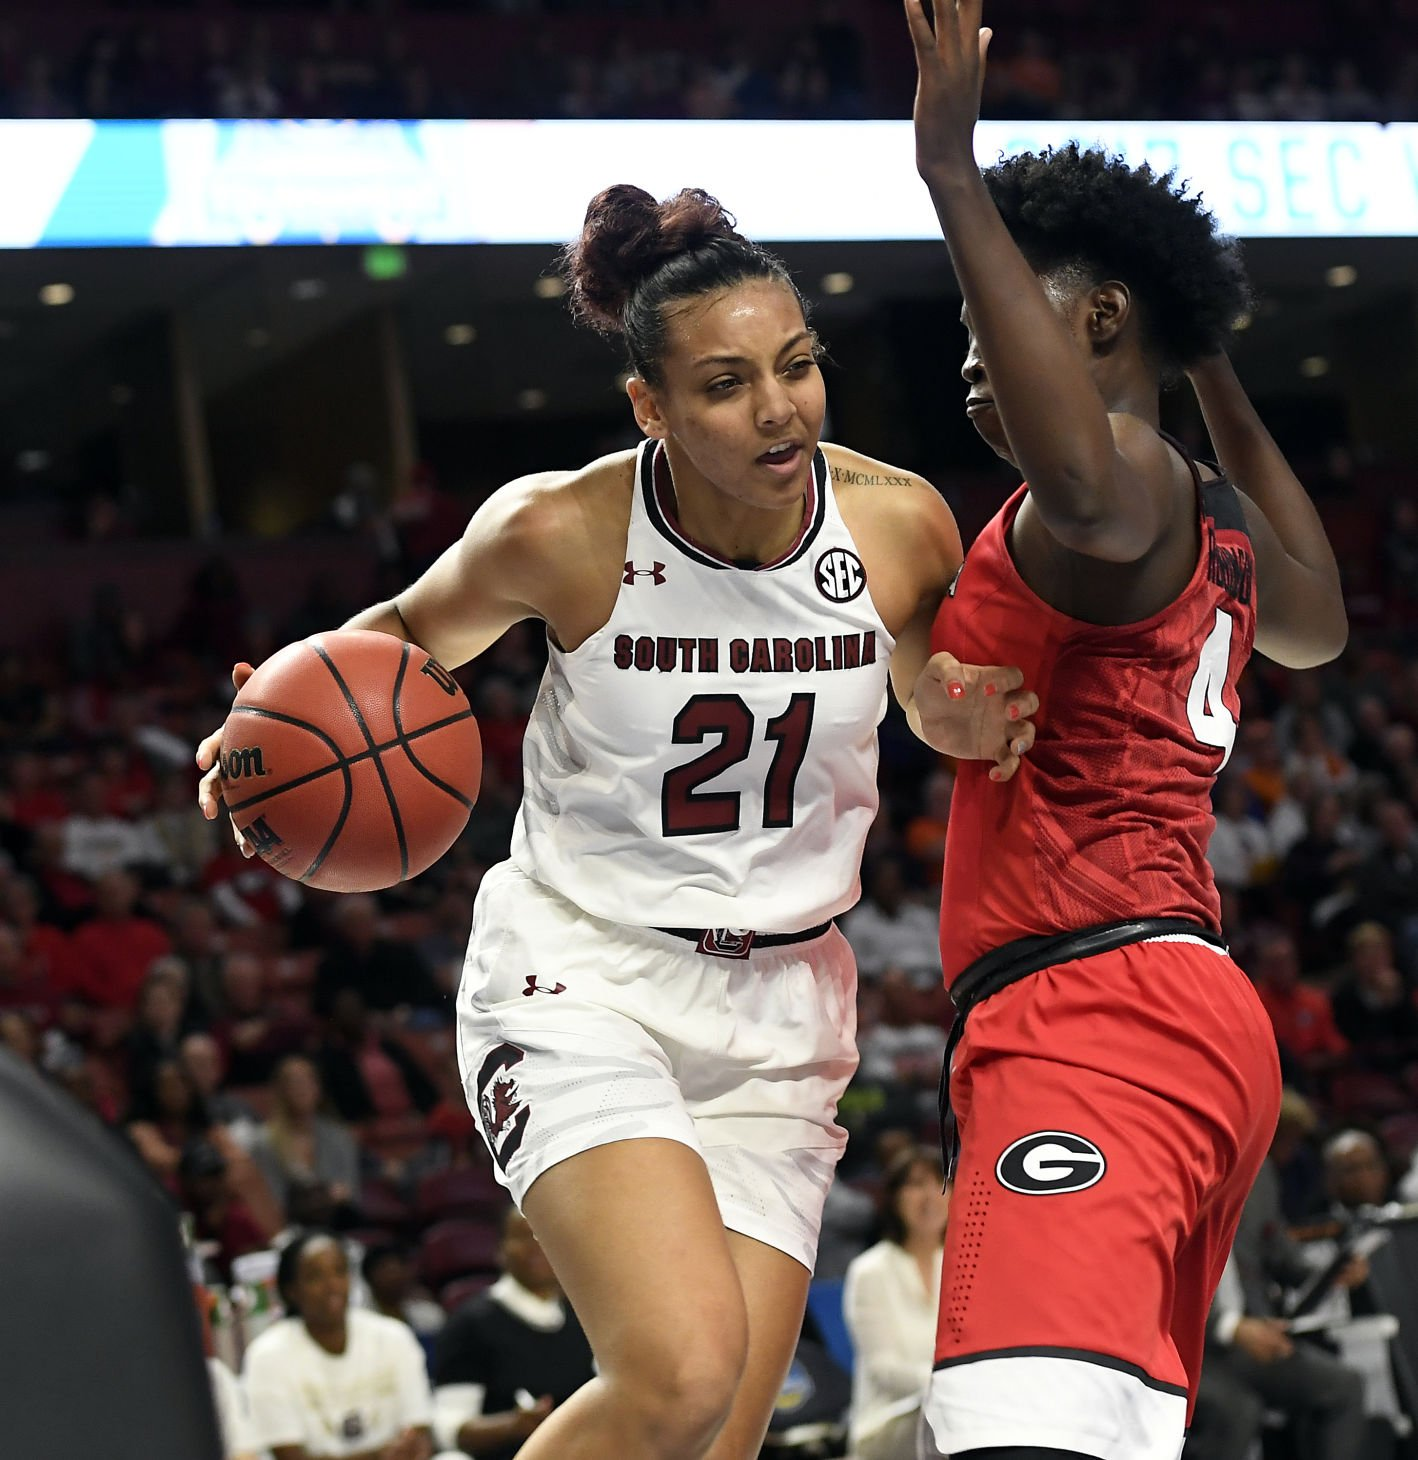 #5 SC cruises past Georgia into next round